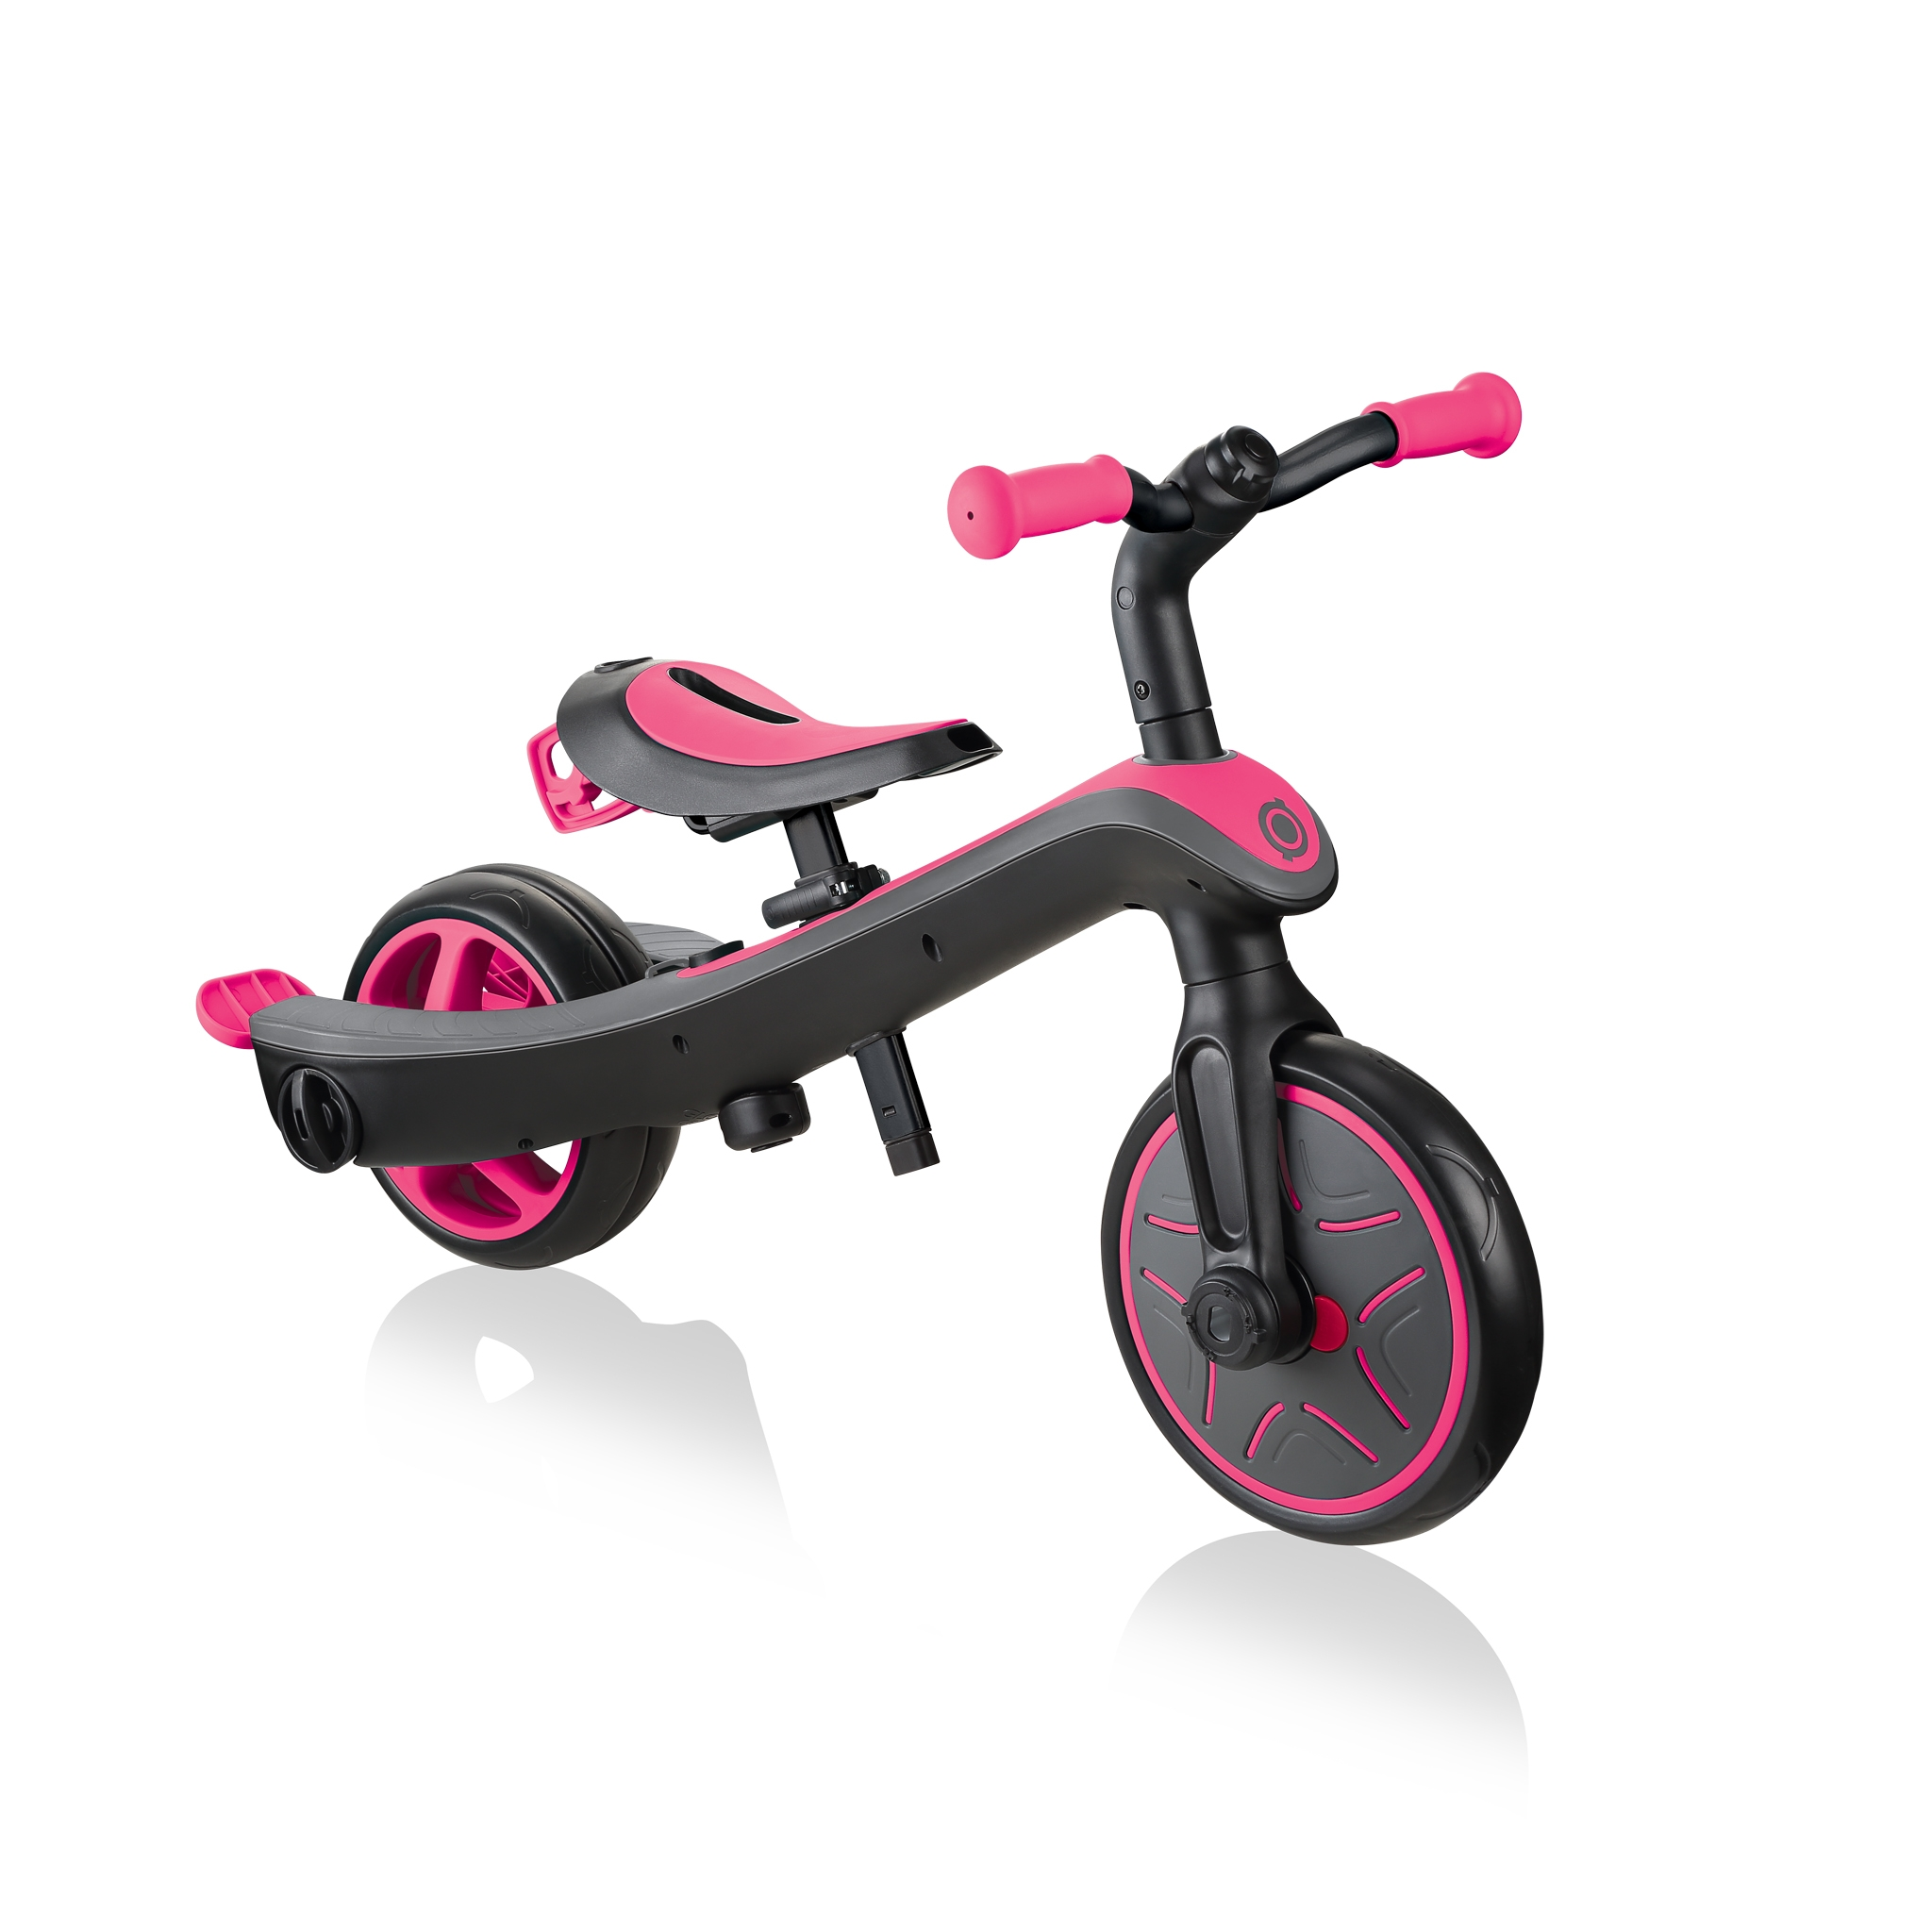 Globber-EXPLORER-TRIKE-4in1-all-in-one-baby-tricycle-and-kids-balance-bike-stage4-balance-bike